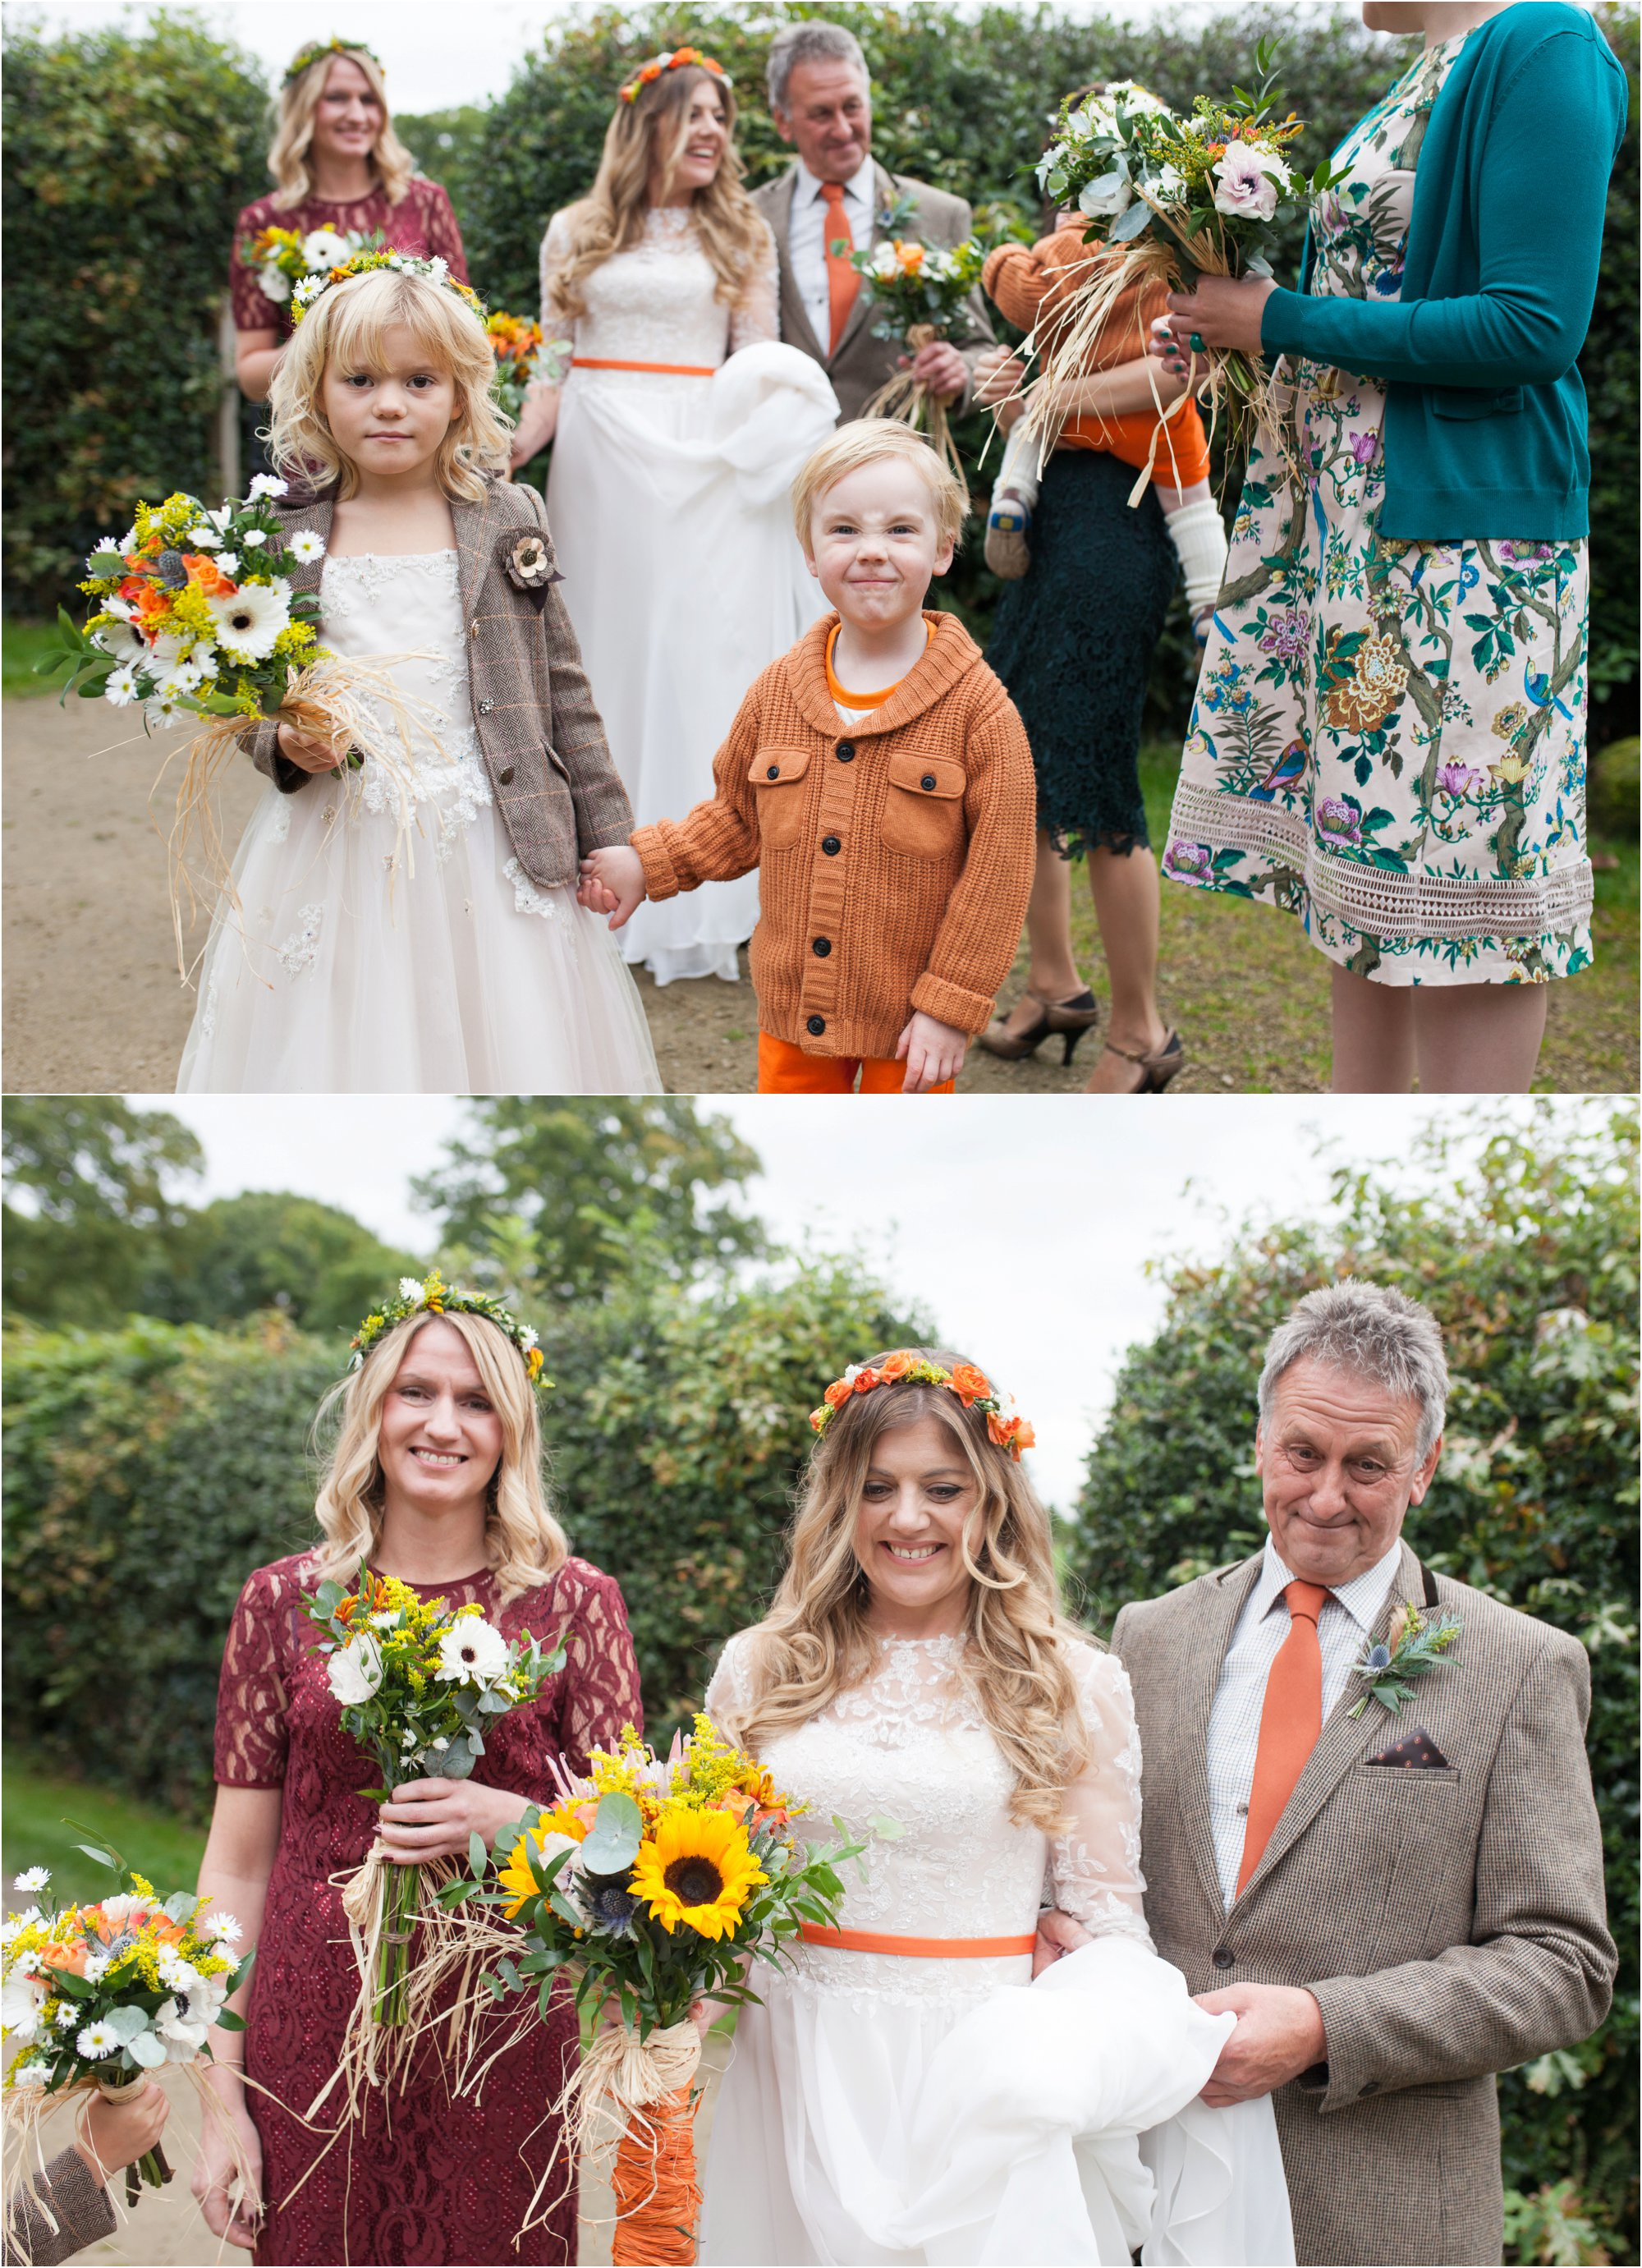 Styal_Wedding_Wilmslow_Cheshire_Autumn_Colourful_photography_0079.jpg